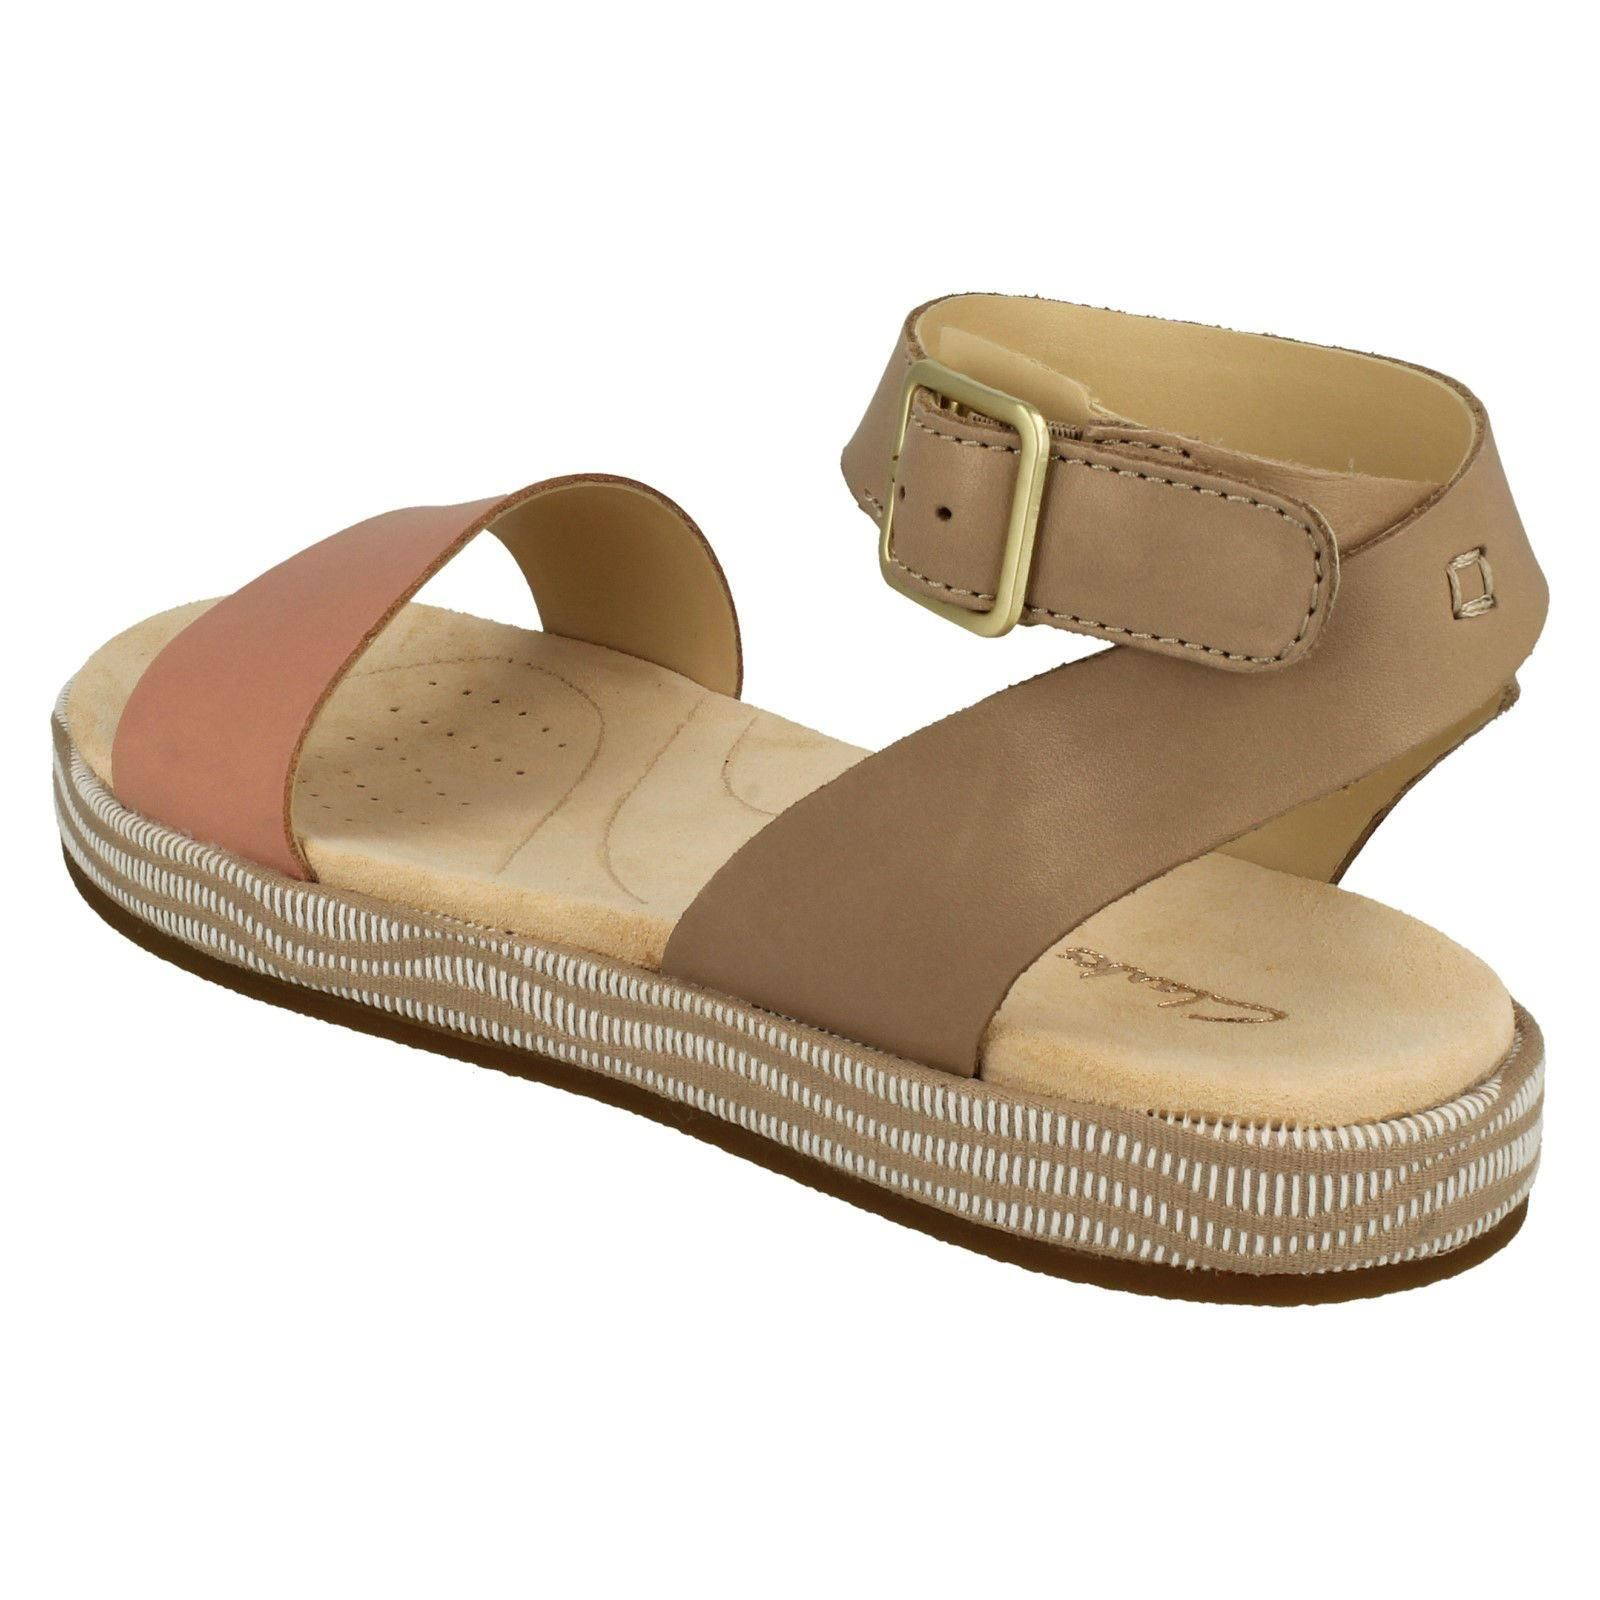 ac8c48d79 Clarks Botanic Ivy - Sand Combi (beige) Womens Sandals 6 UK. About this  product. Picture 1 of 10  Picture 2 of 10  Picture 3 of 10 ...